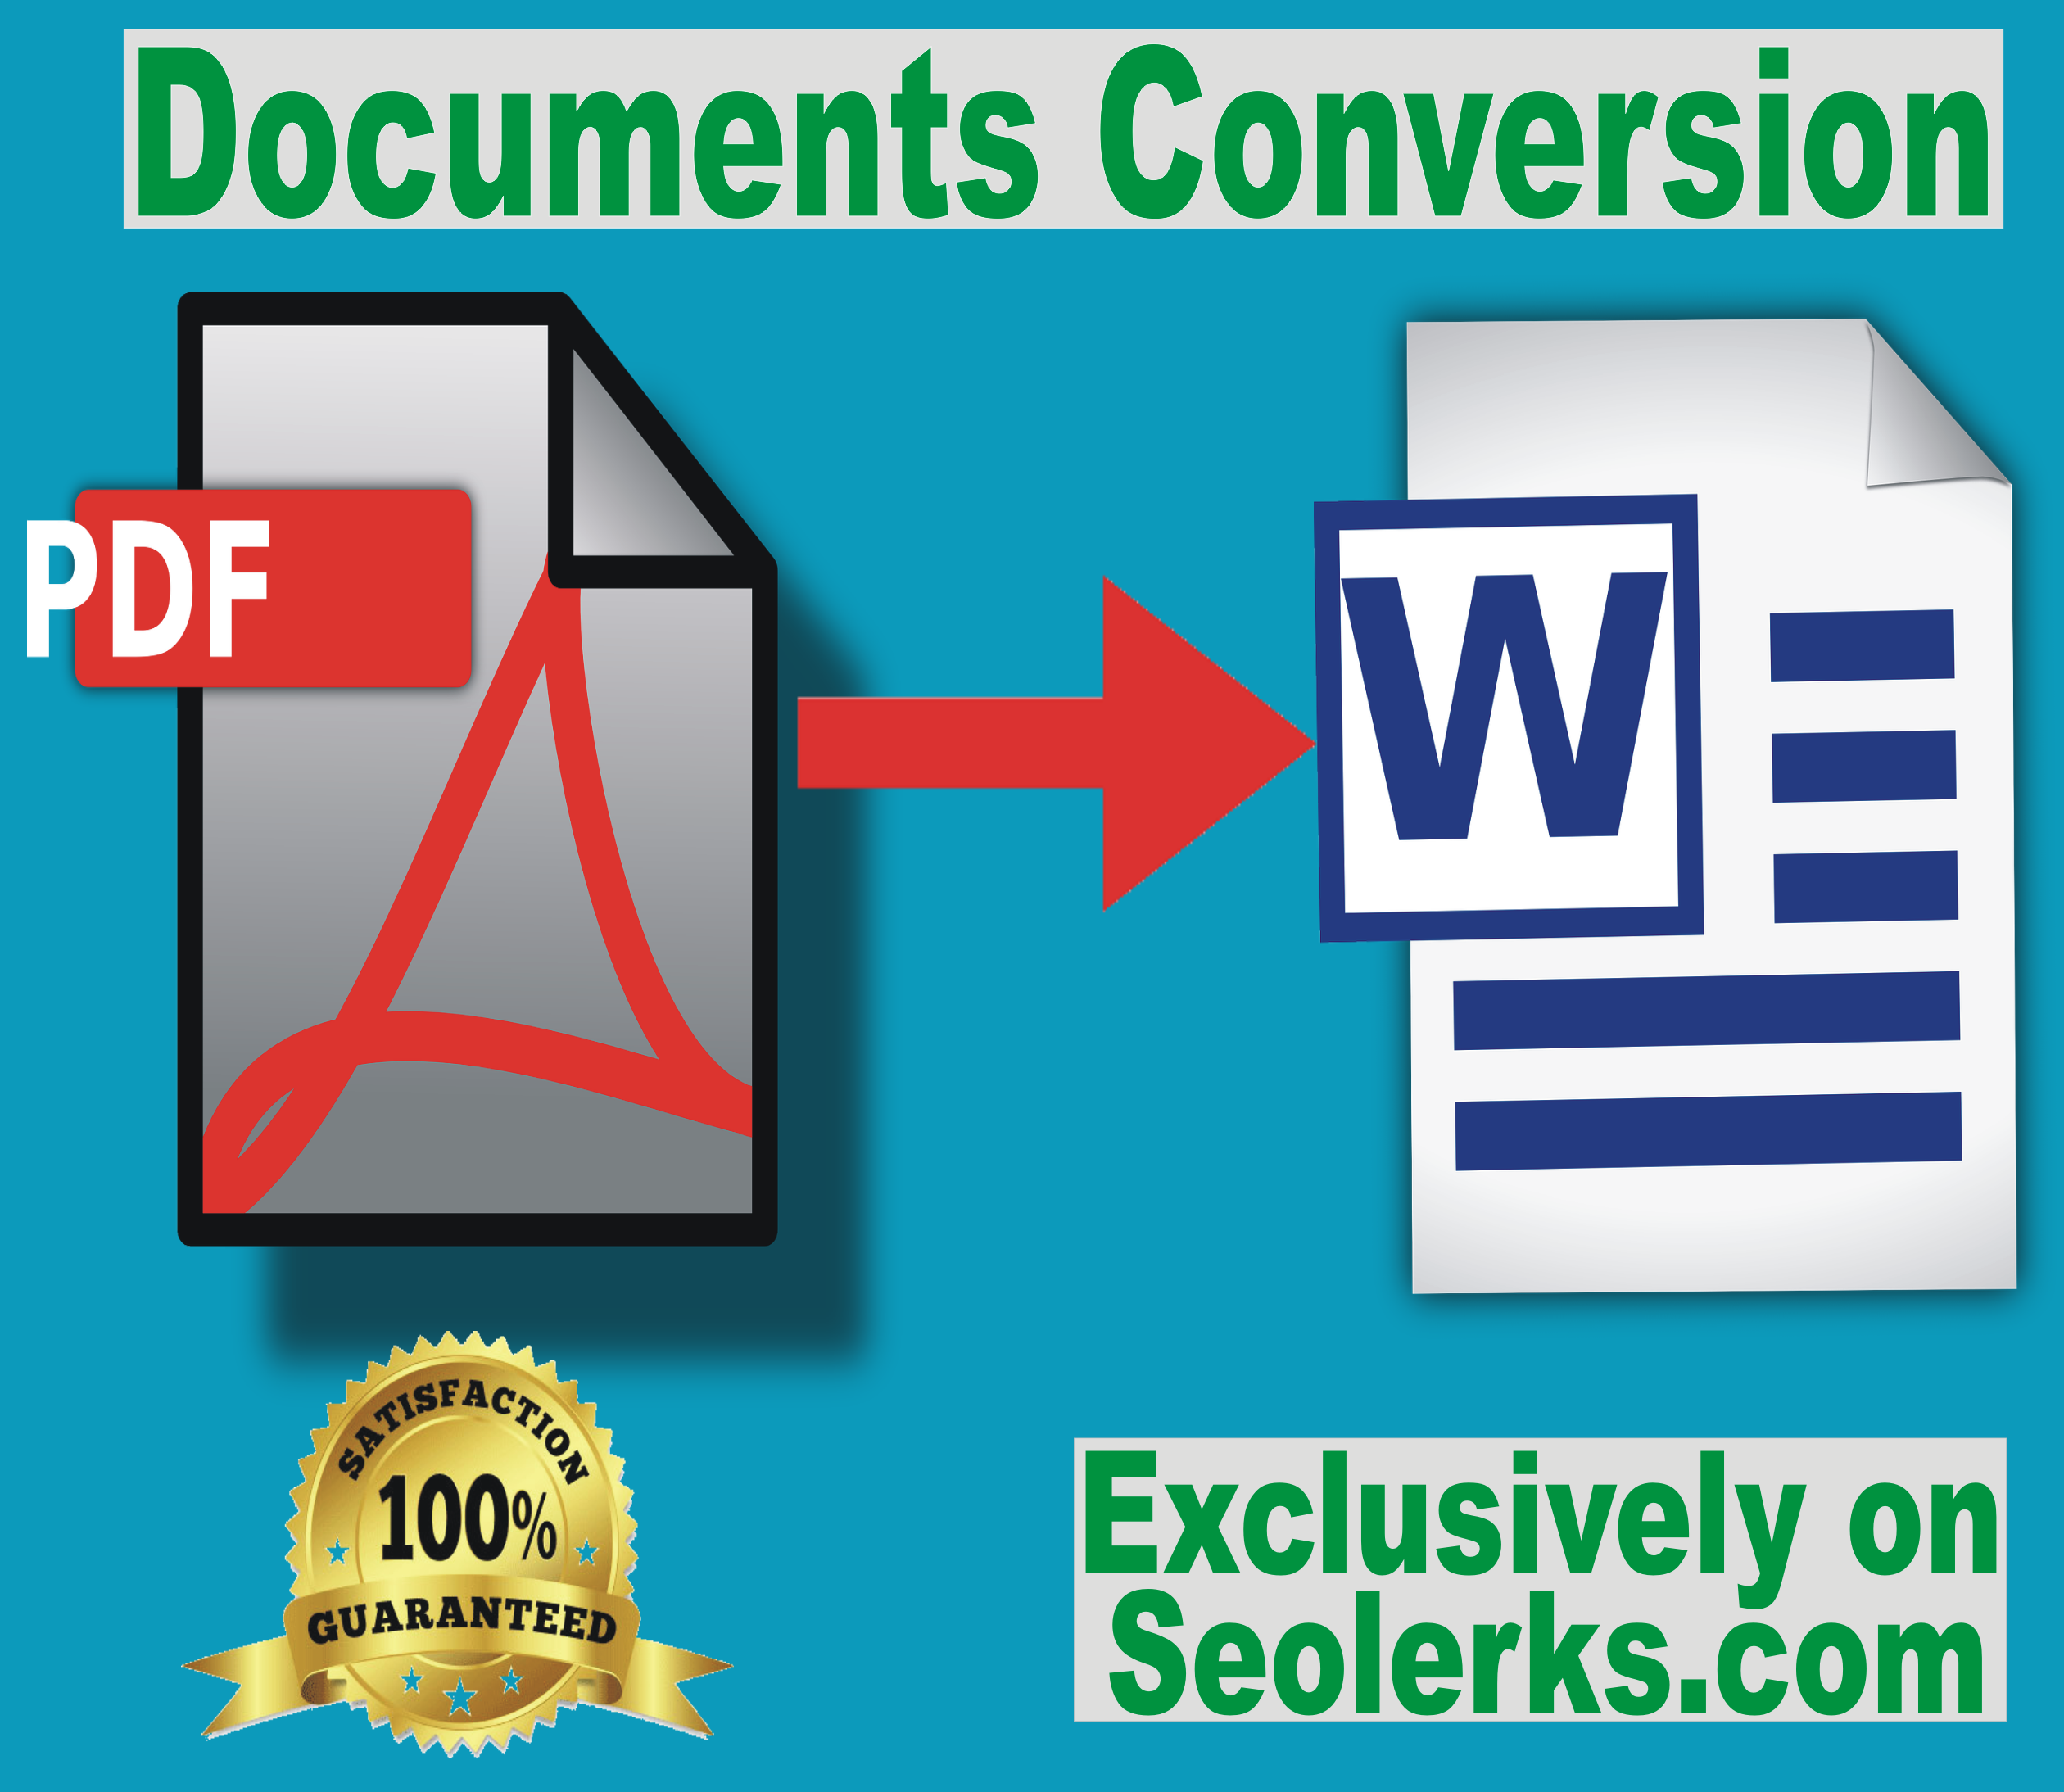 I will convert your PDF format documents to Microsoft Word format documents for 5.